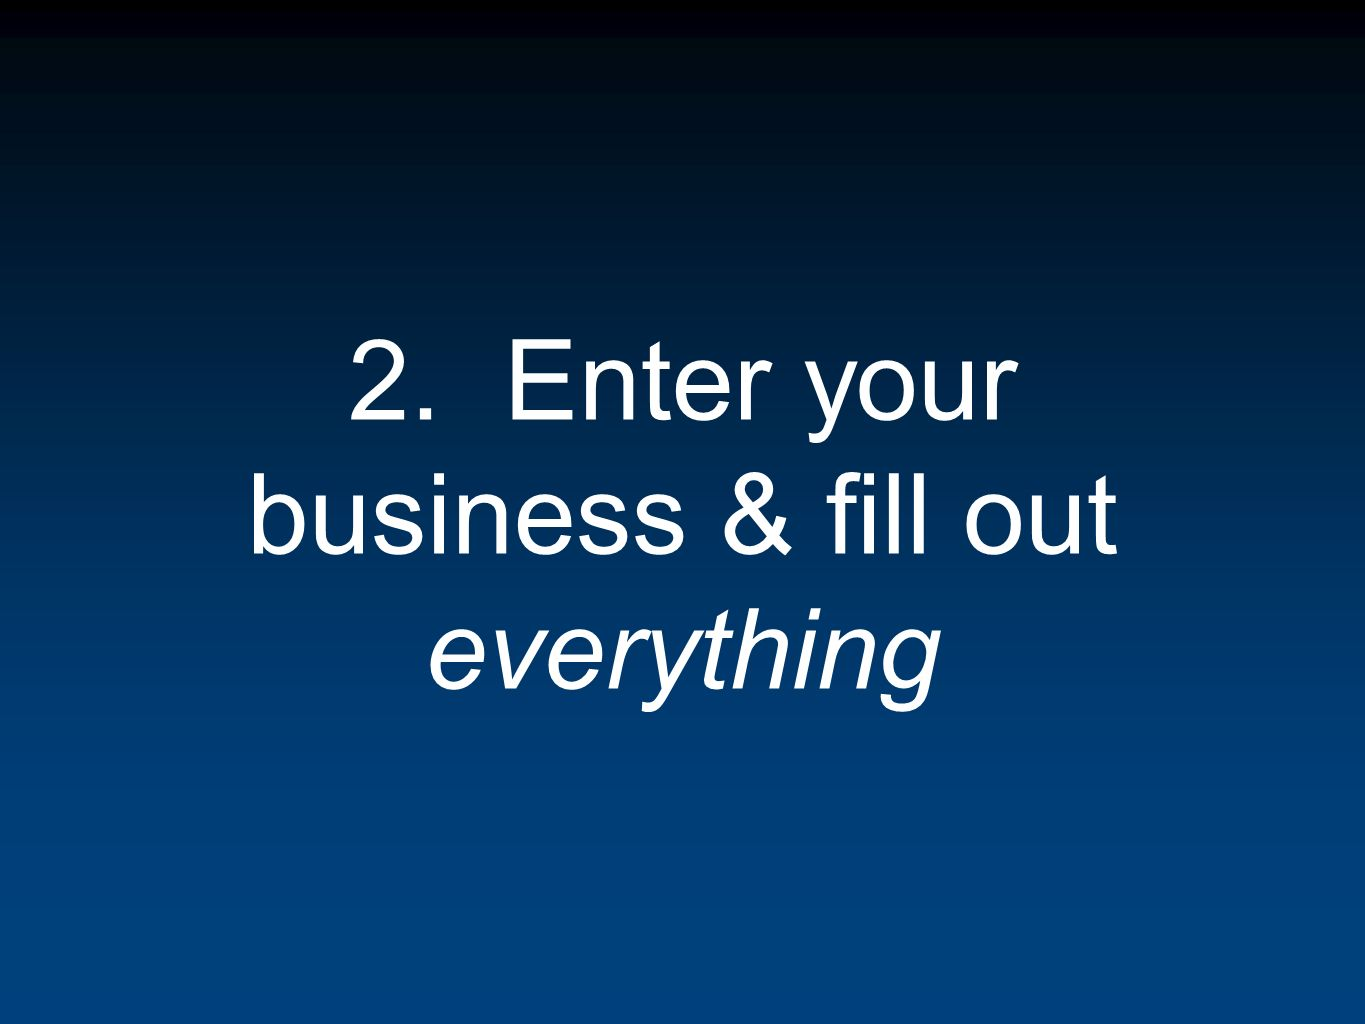 2. Enter your business & fill out everything